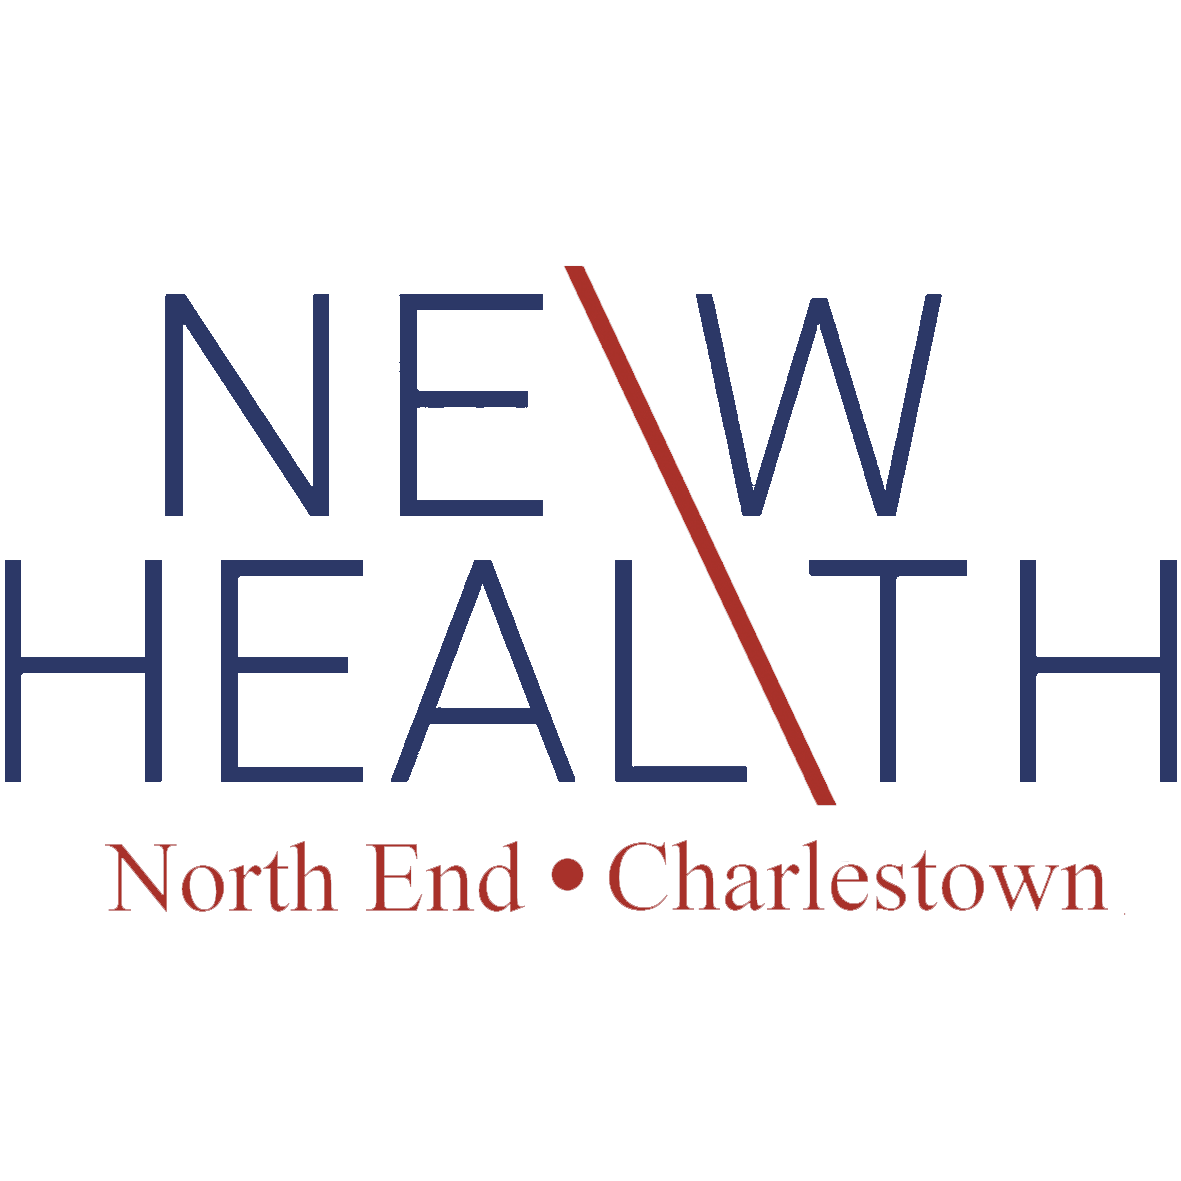 newhealthlogo - use for printed materials.png